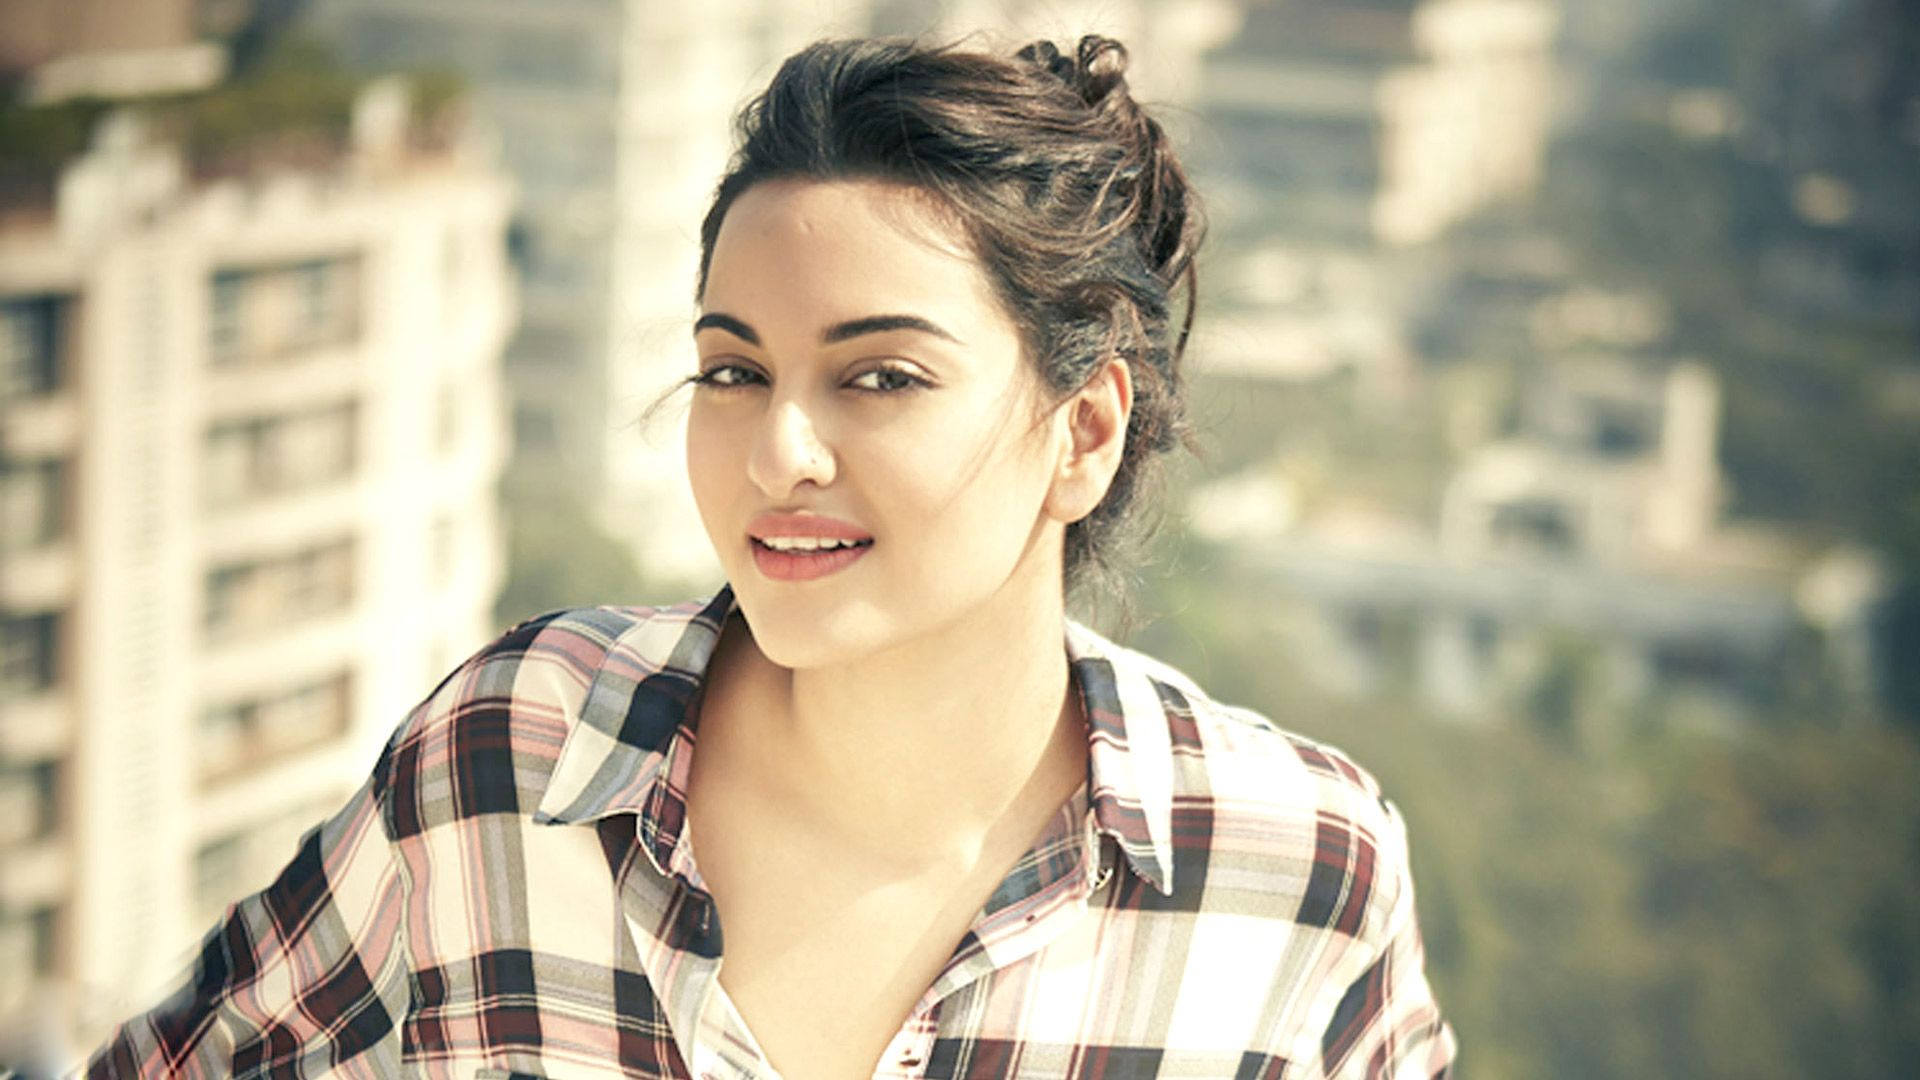 Bollywood Hd Wallpapers Backgrounds Wallpaper X Wallpaper Bollywood  Wallpapers Adorable